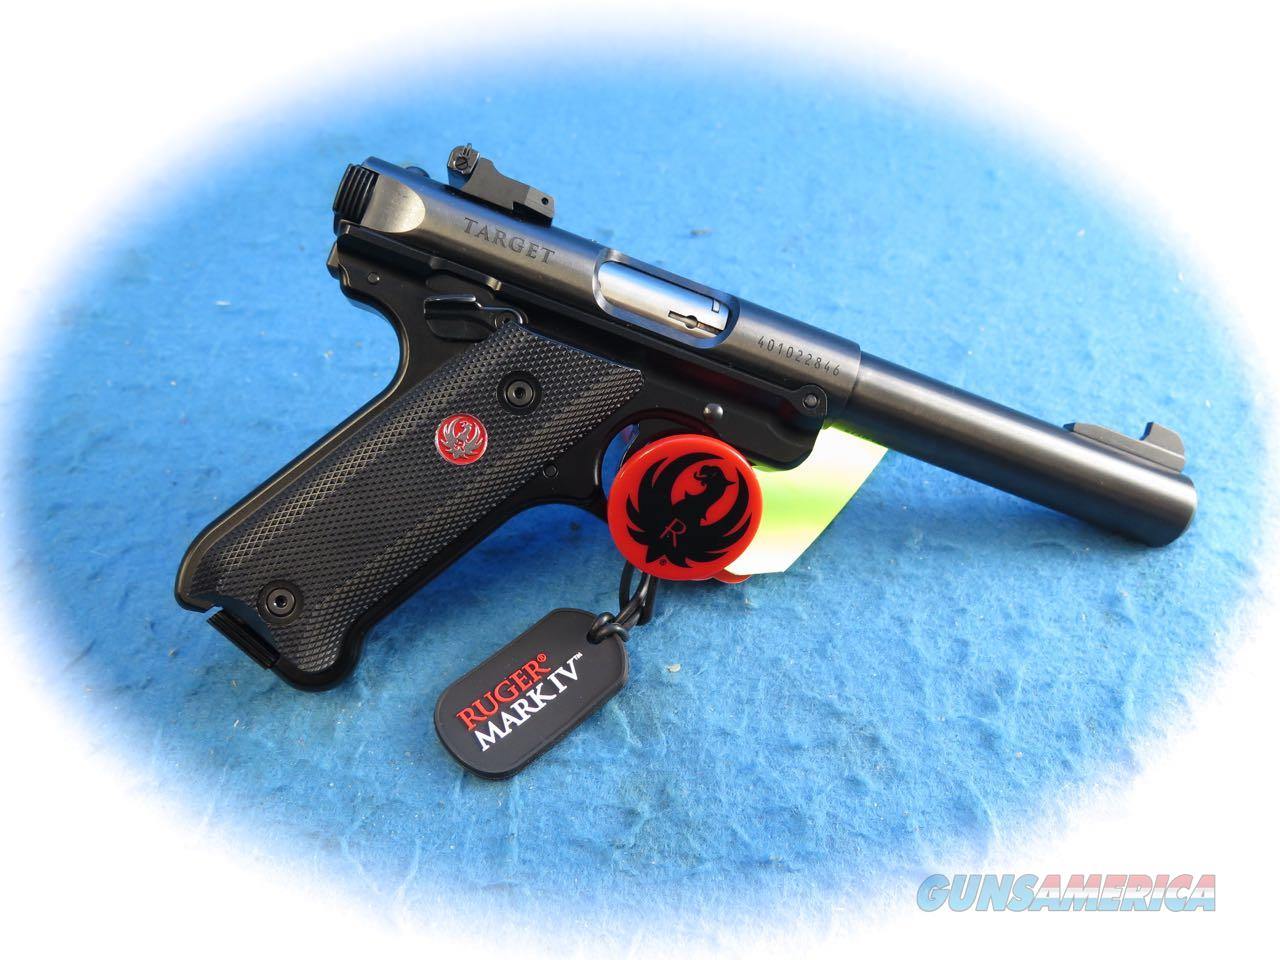 Ruger Mark IV Target Pistol .22 LR Cal Model 40101 **New**  Guns > Pistols > Ruger Semi-Auto Pistols > Mark I/II/III Family